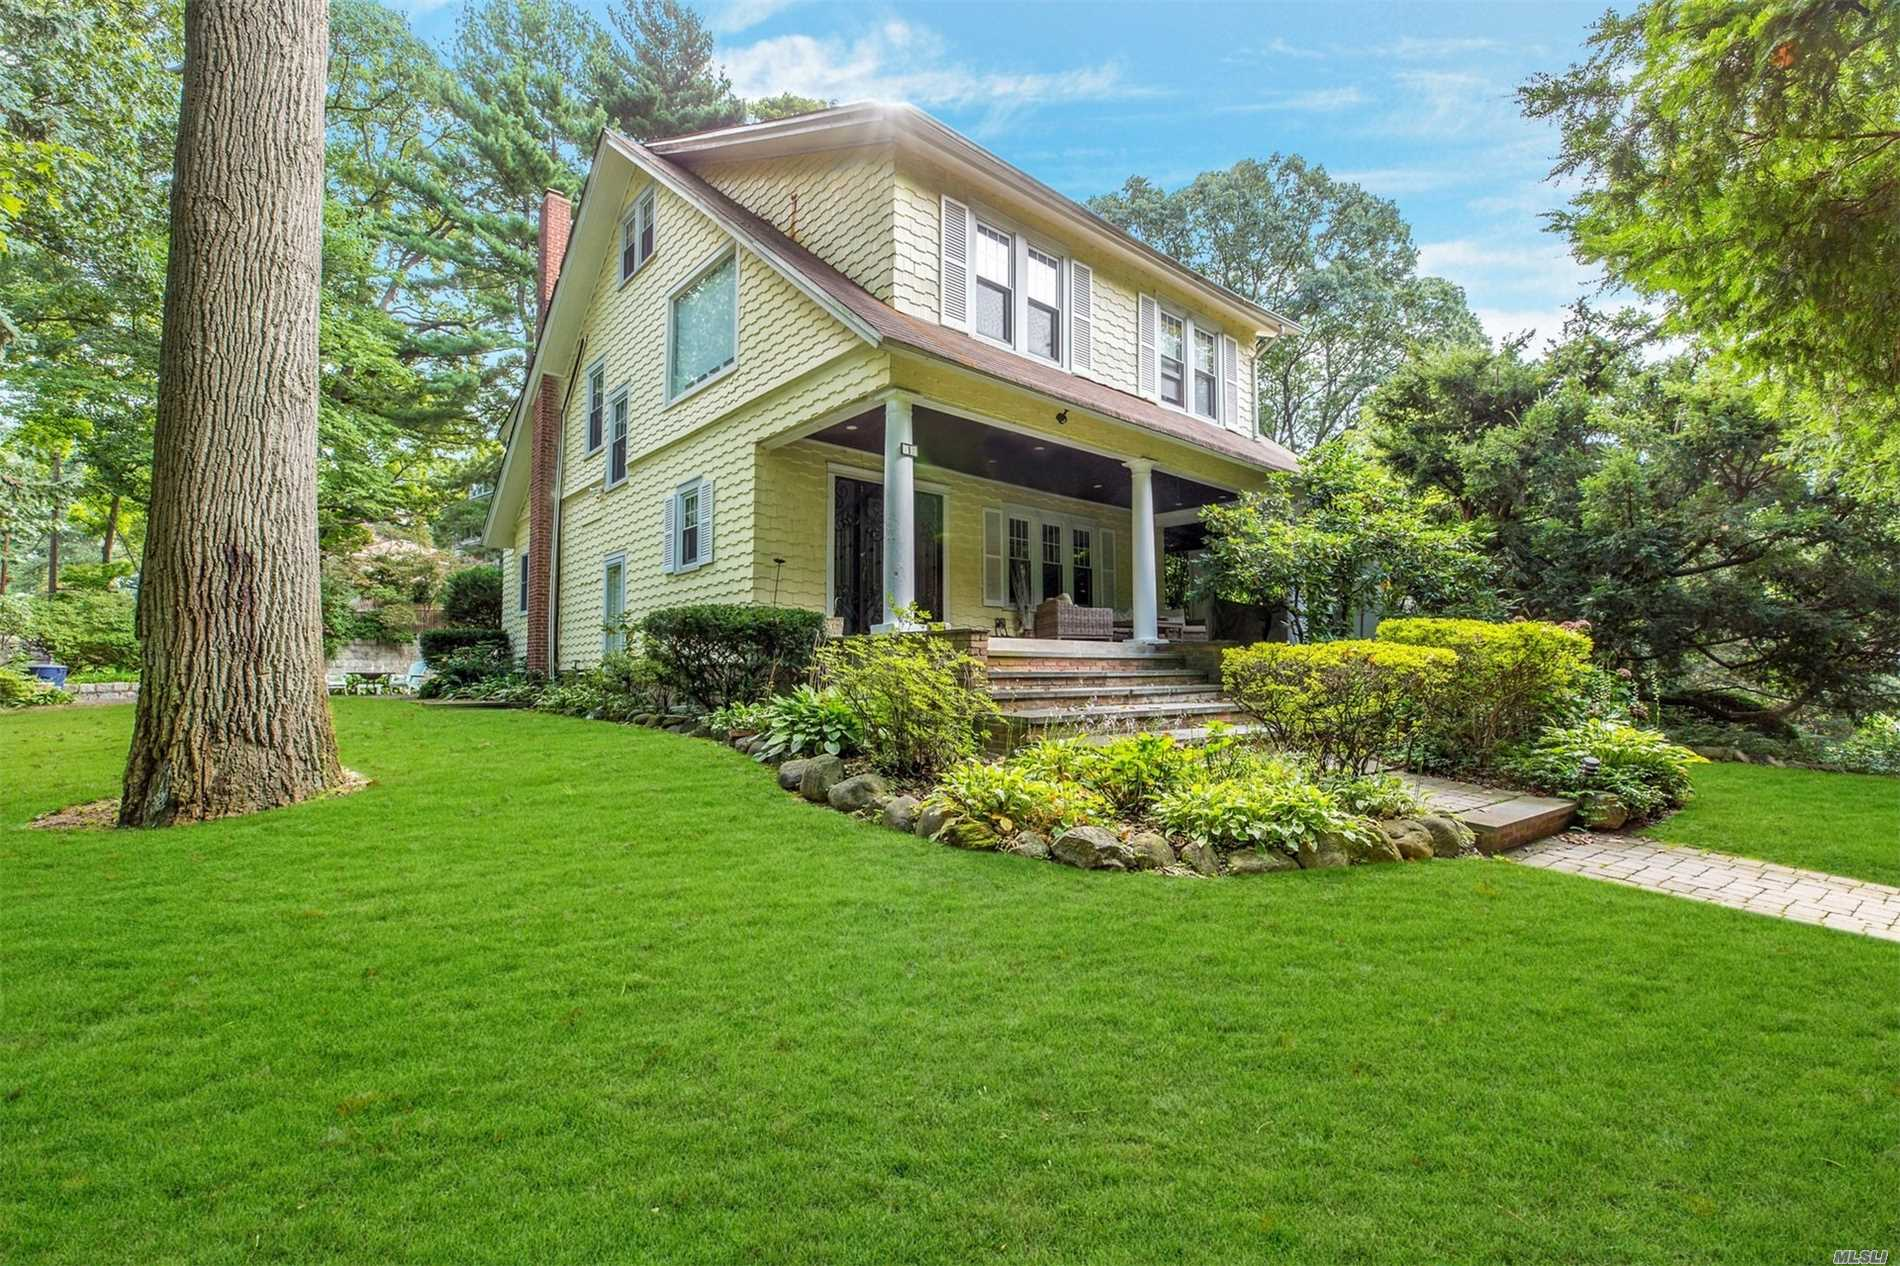 Charming 3 Bedroom, 3 Full Bath Front Porch Colonial Located In Baxter Estates. Large Living Room W/Fireplace Leading Into Formal Dining Room, Oversized Eik Leading To Private Patio. Master With Ensuite, Walk Up Attic, Spacious Wrap-Around Porch With Beautifully Landscaped Yard.